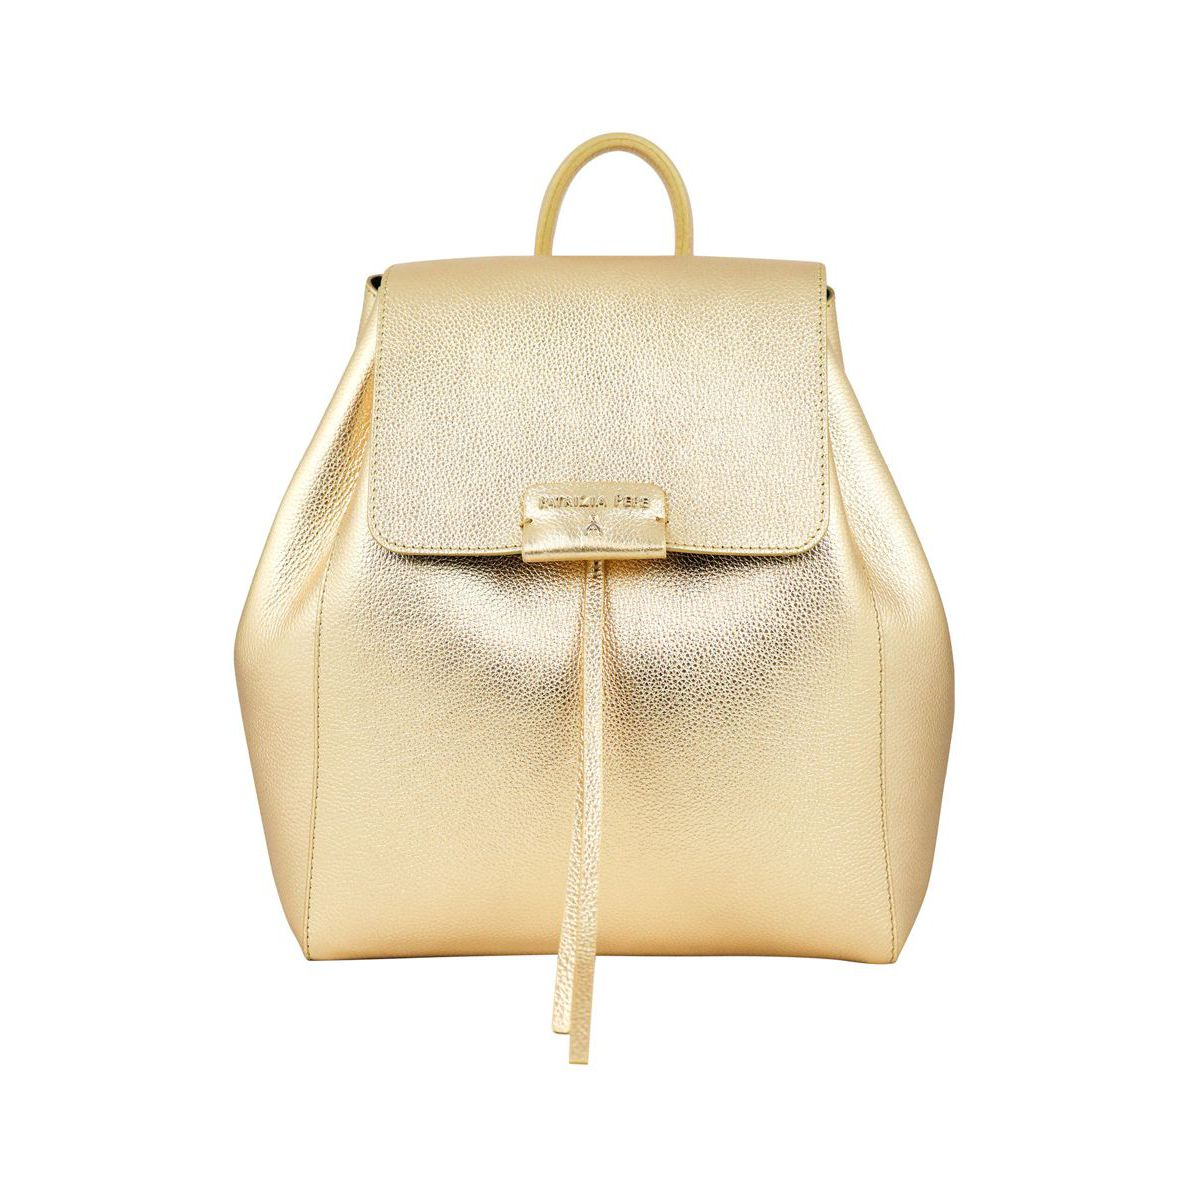 Leather backpack with magnet closure Gold Patrizia Pepe